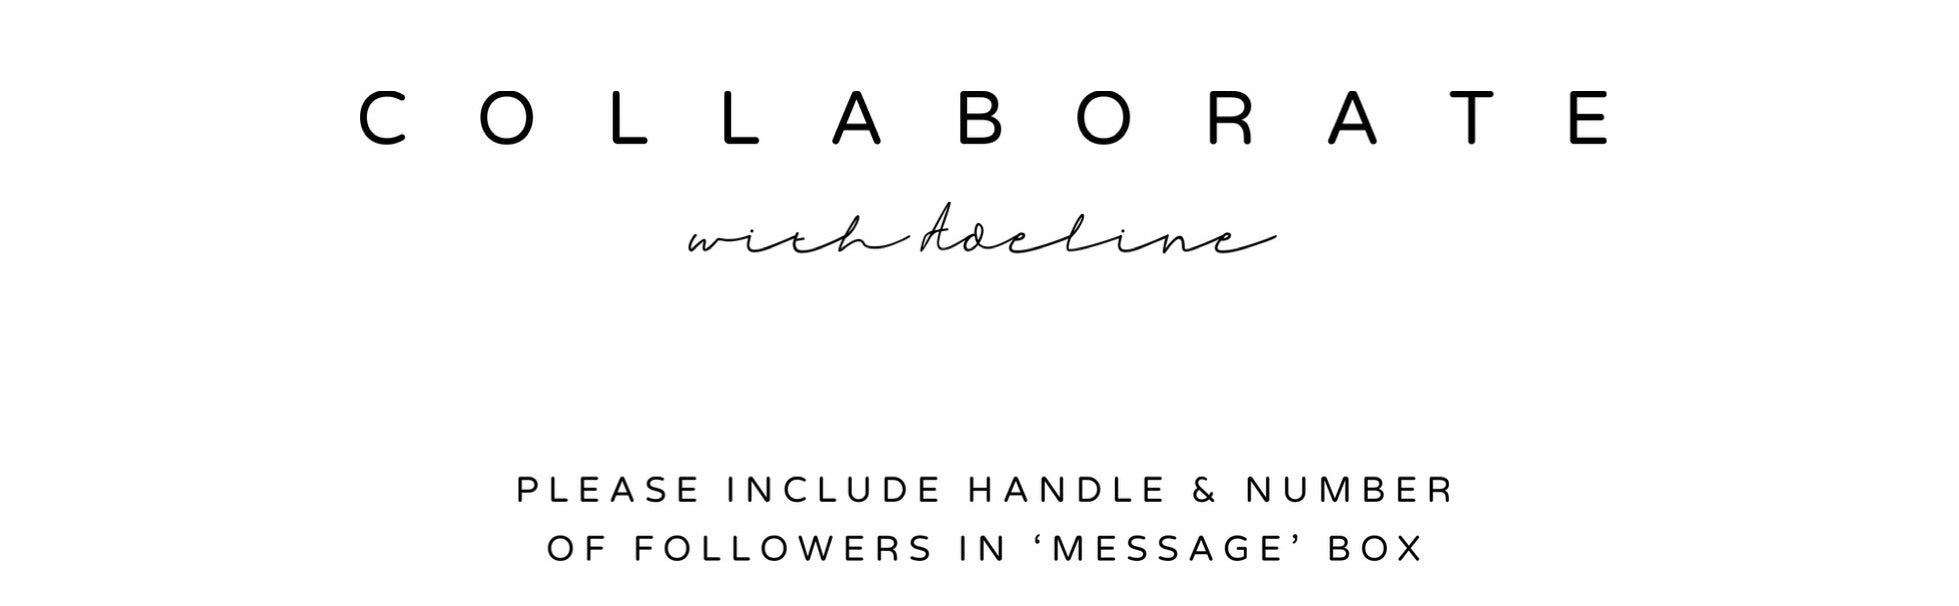 collaborate with us, please include instagram name and amount of followers in the message box.